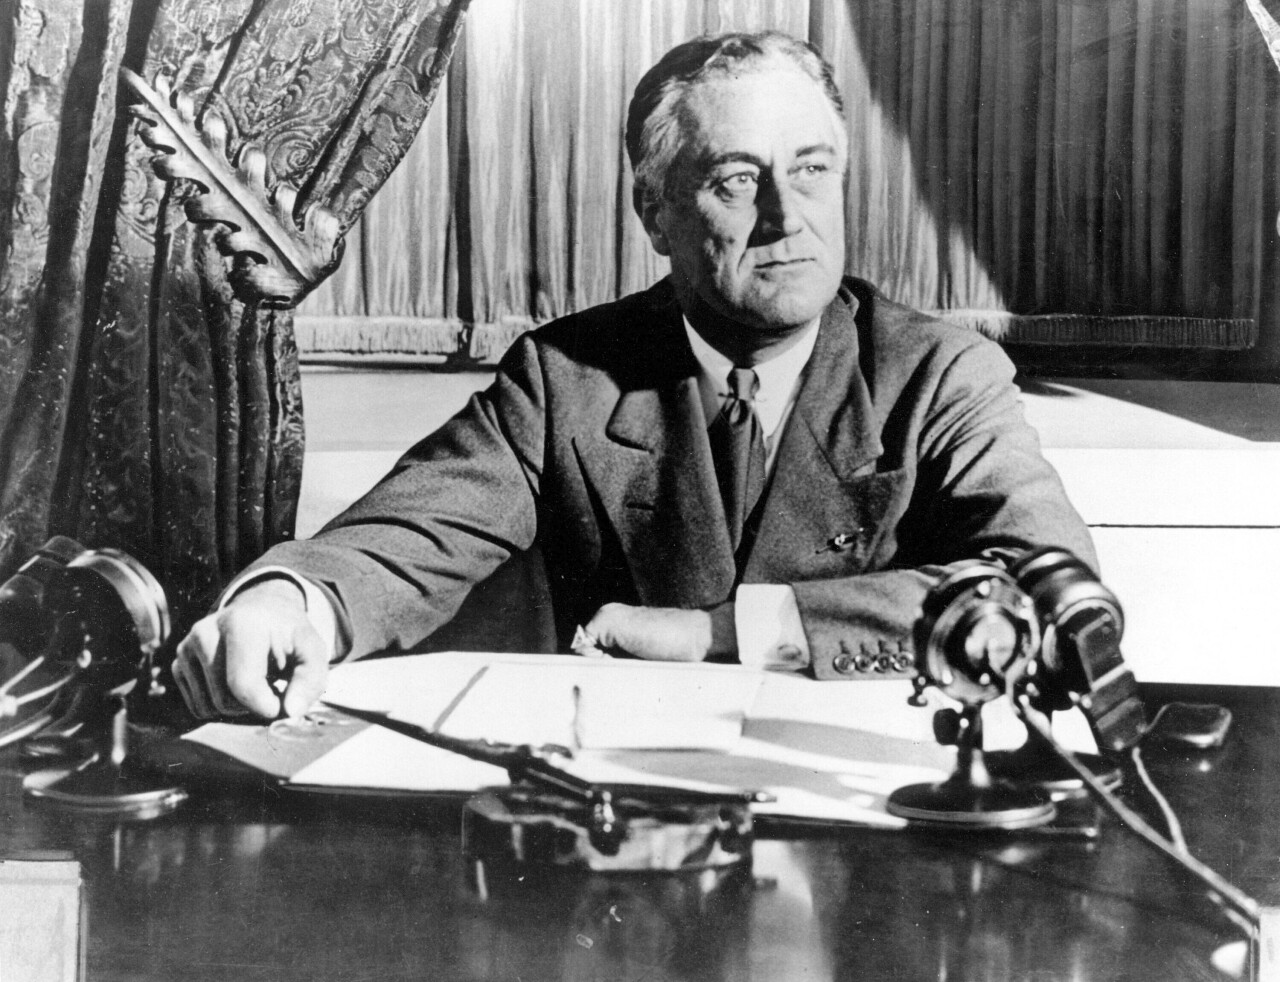 """In this March 1933, file photo, President Franklin D. Roosevelt delivers his first radio """"fireside chat"""" in Washington. The New Deal was a try-anything moment during the Great Depression that remade the role of the federal government in American life. (AP Photo)"""